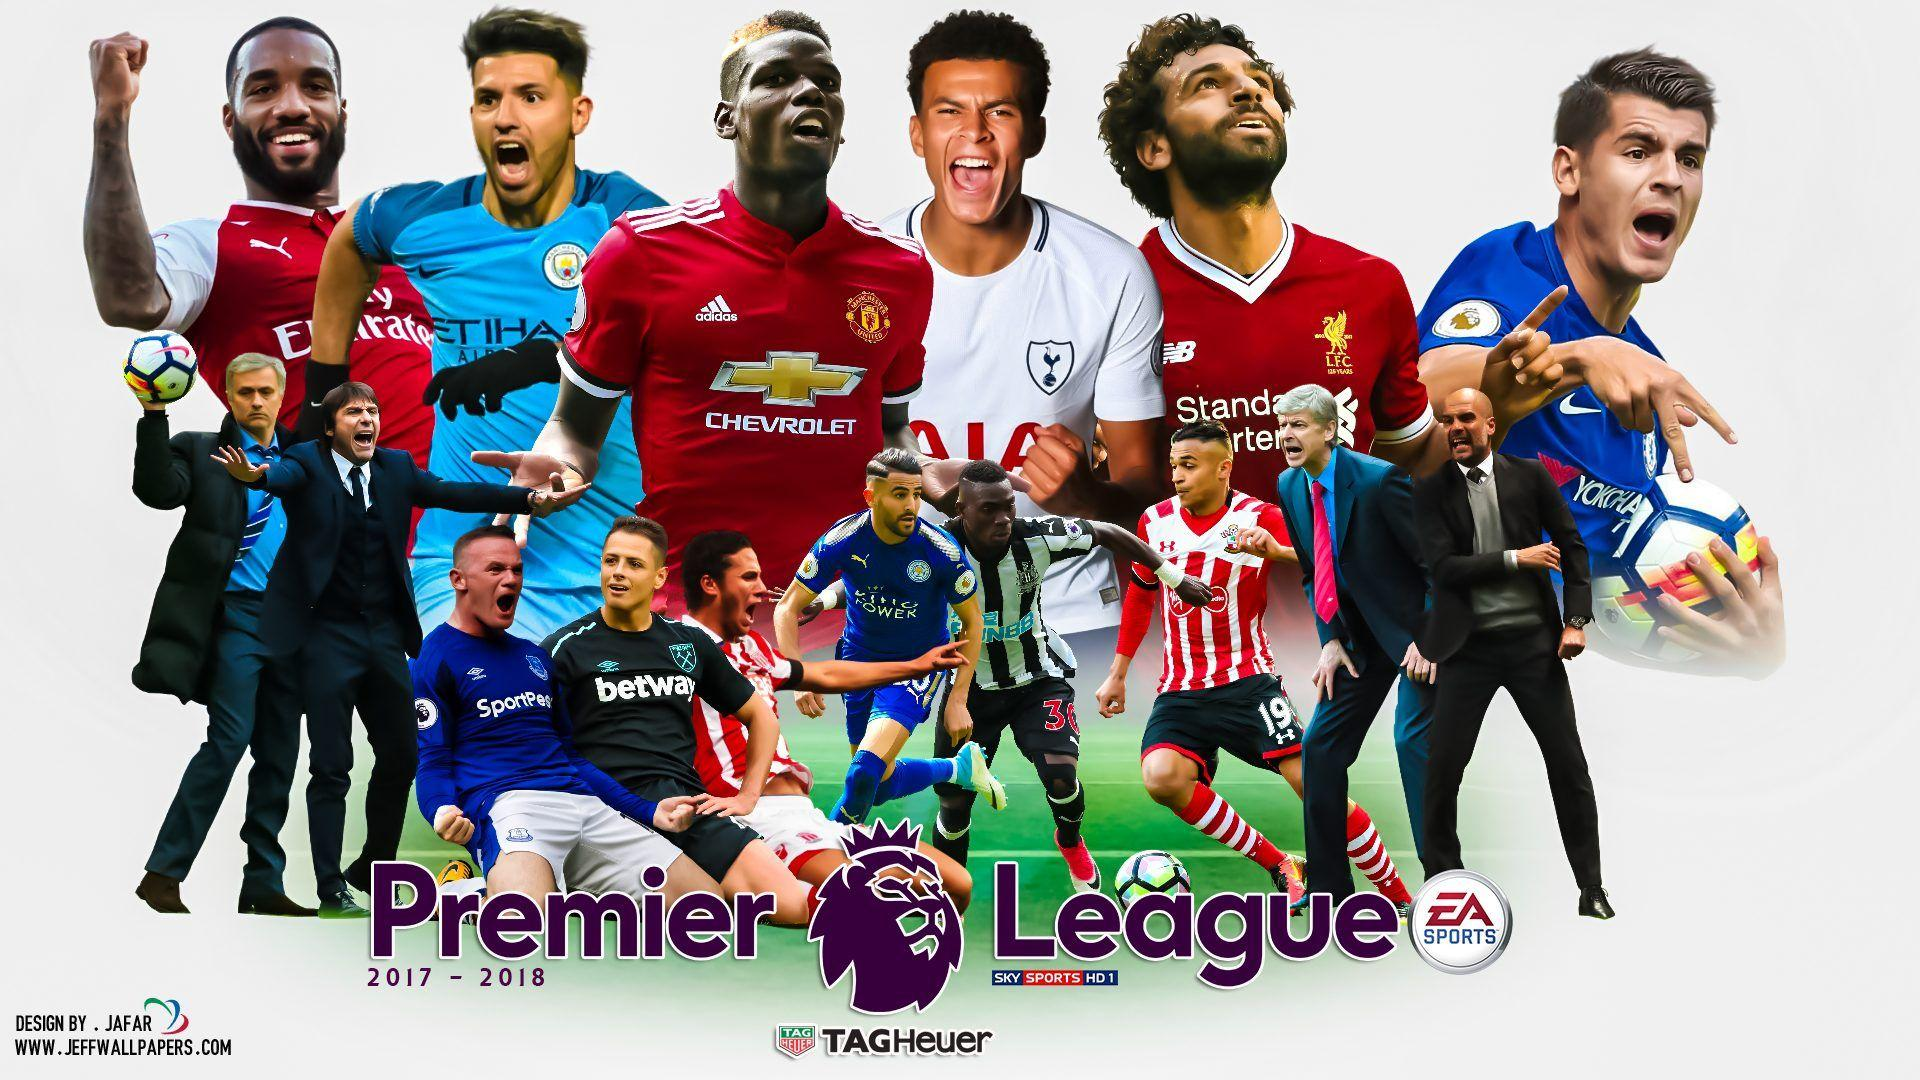 Formtabelle Premier League